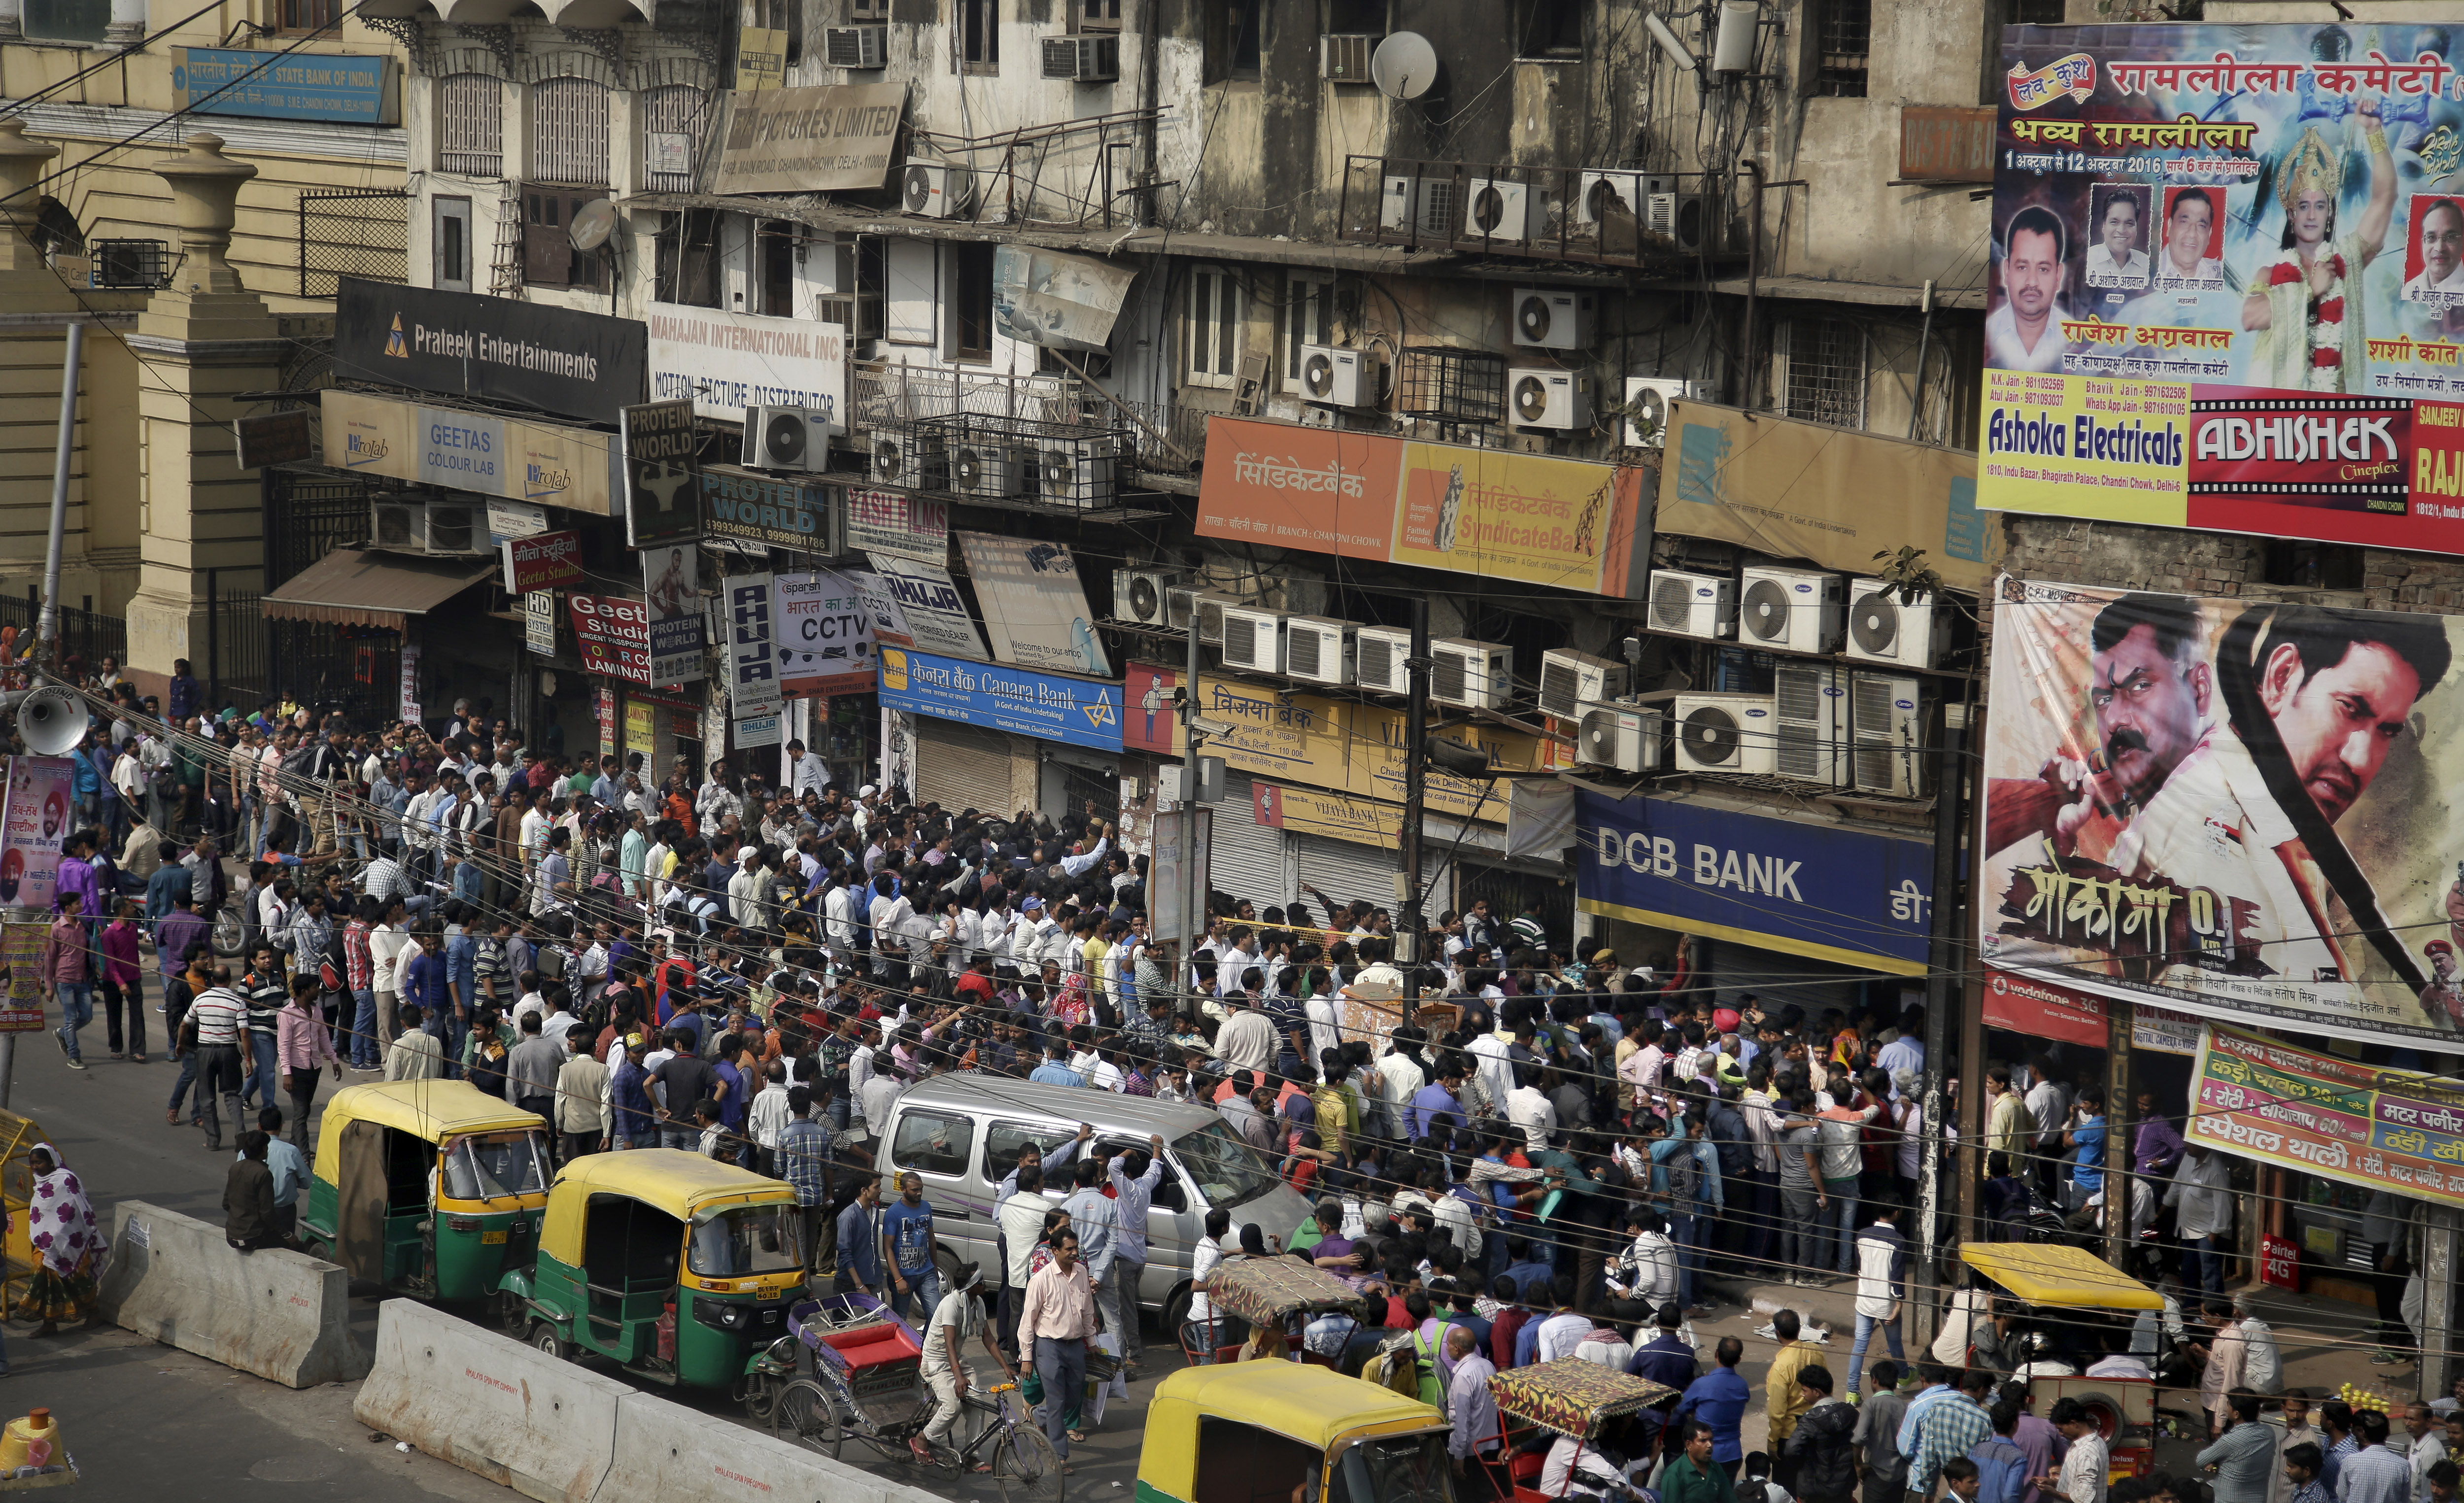 Millions in India crowd banks to exchange currency - The Blade